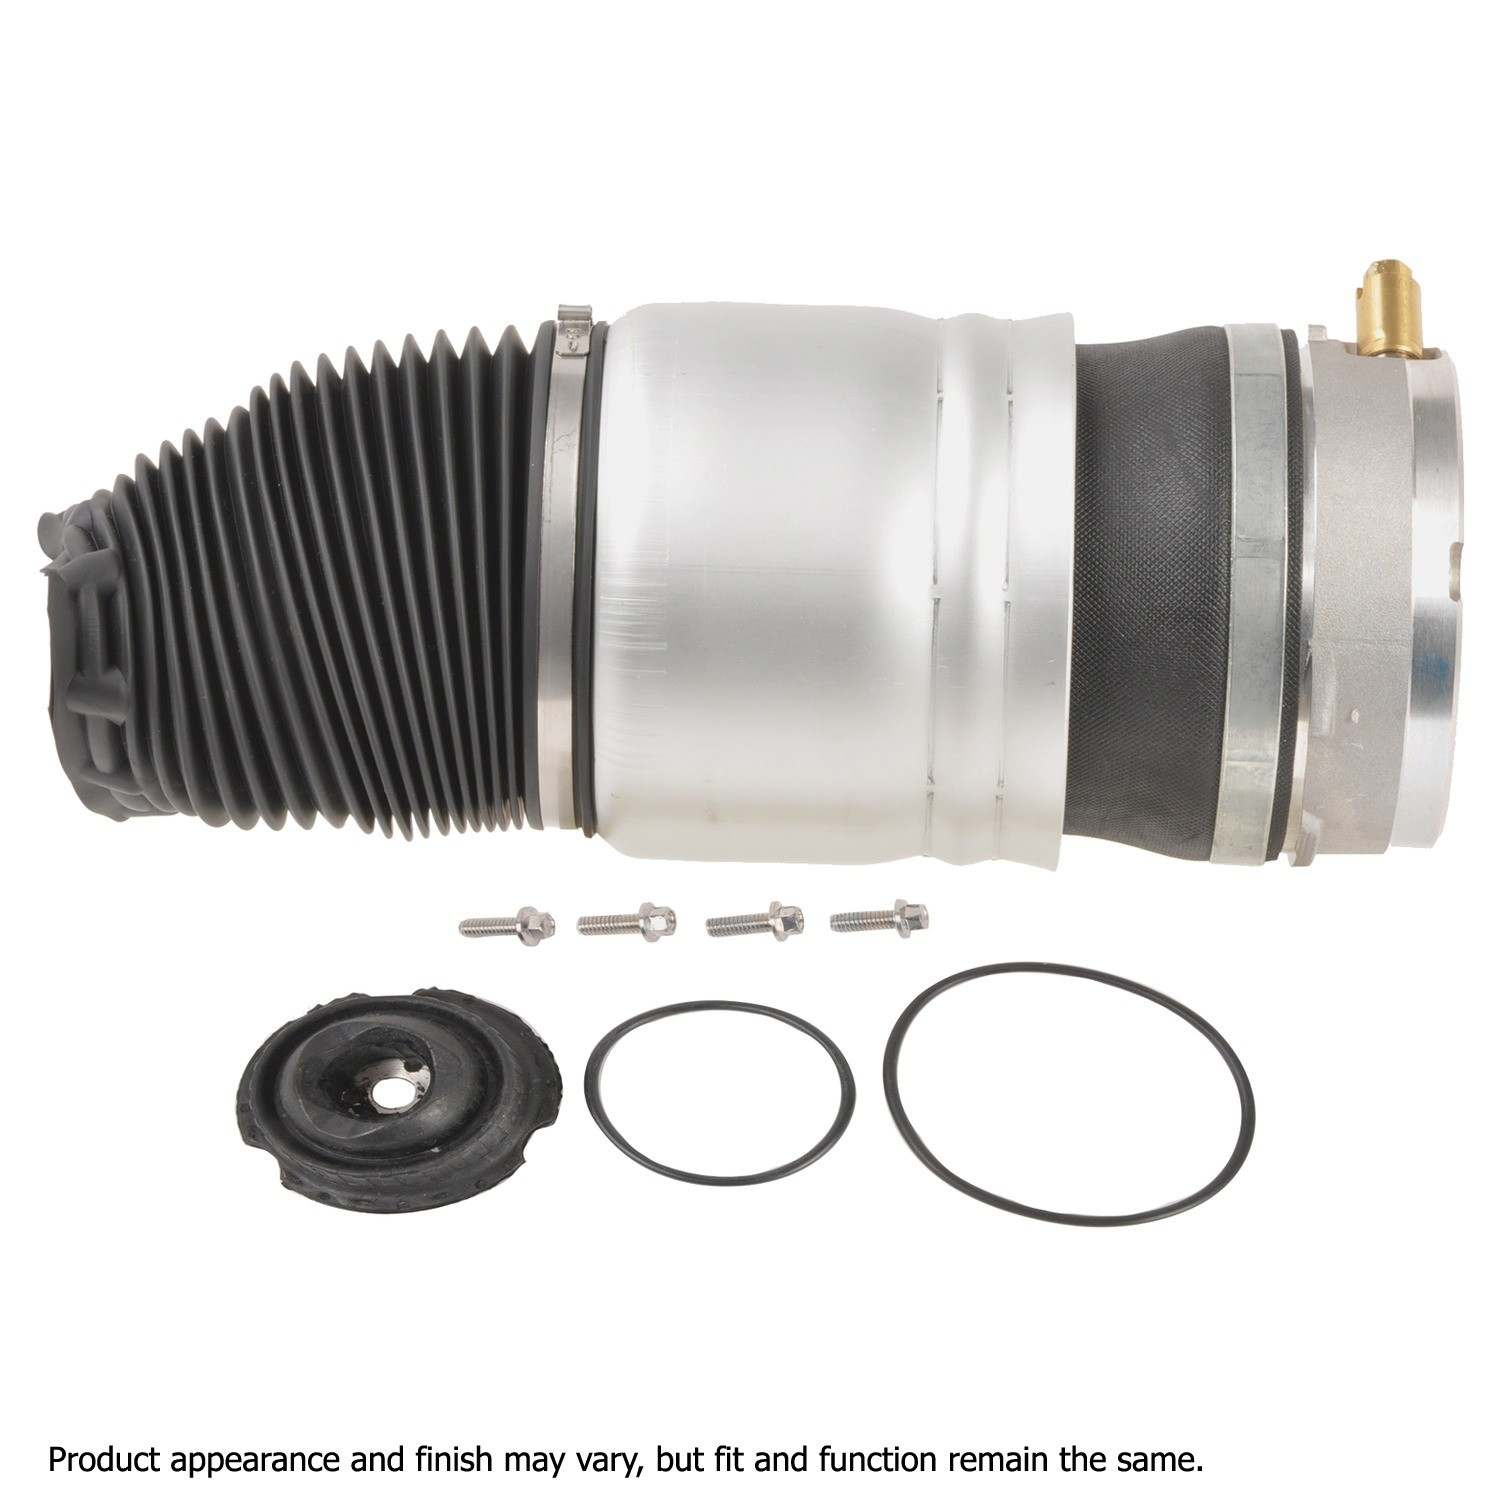 CARDONE REMAN - Suspension Air Spring - A1C 4J-4004A